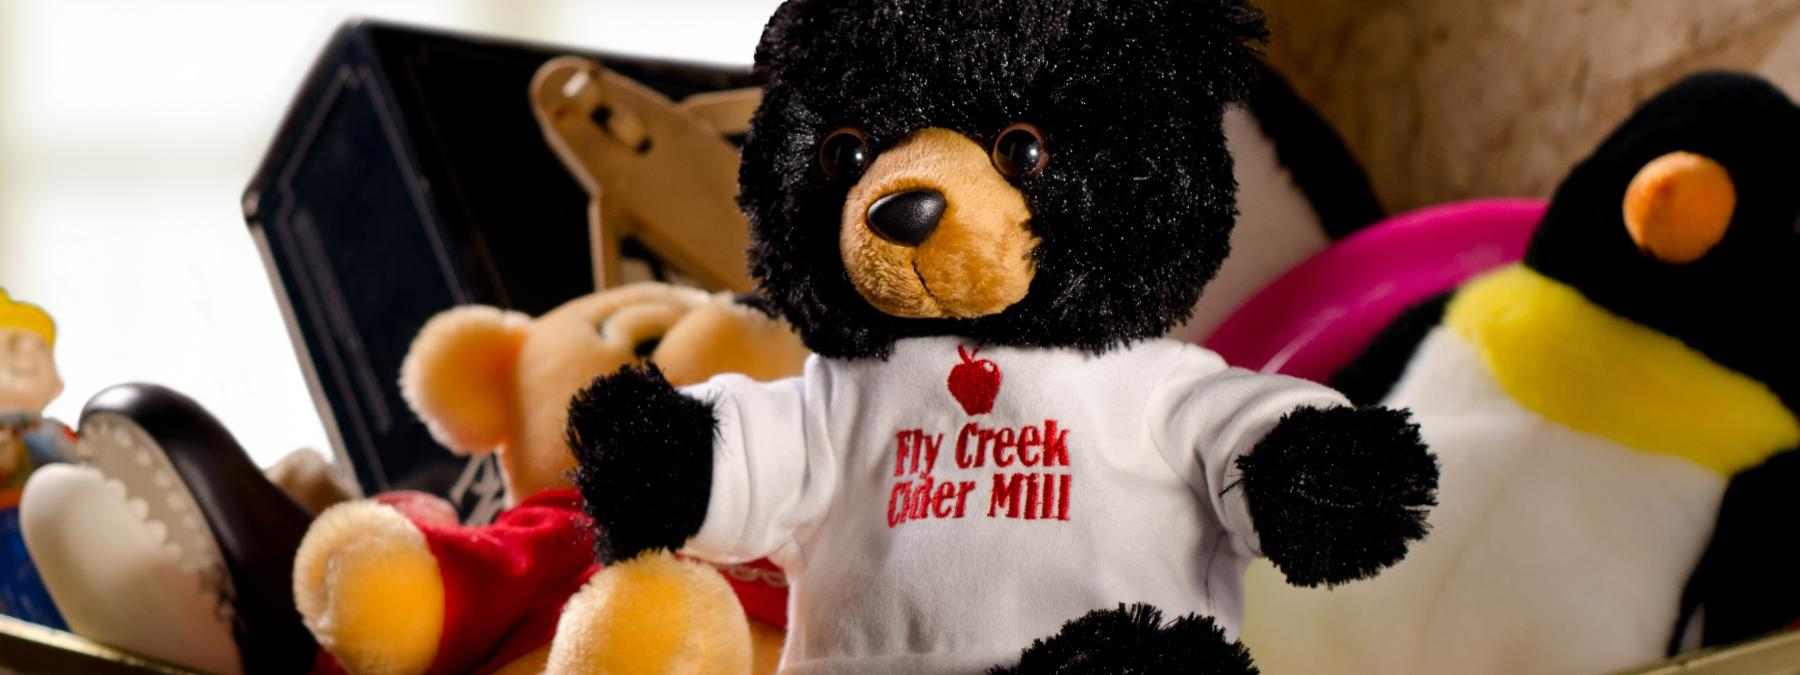 Fly Creek Merchandise